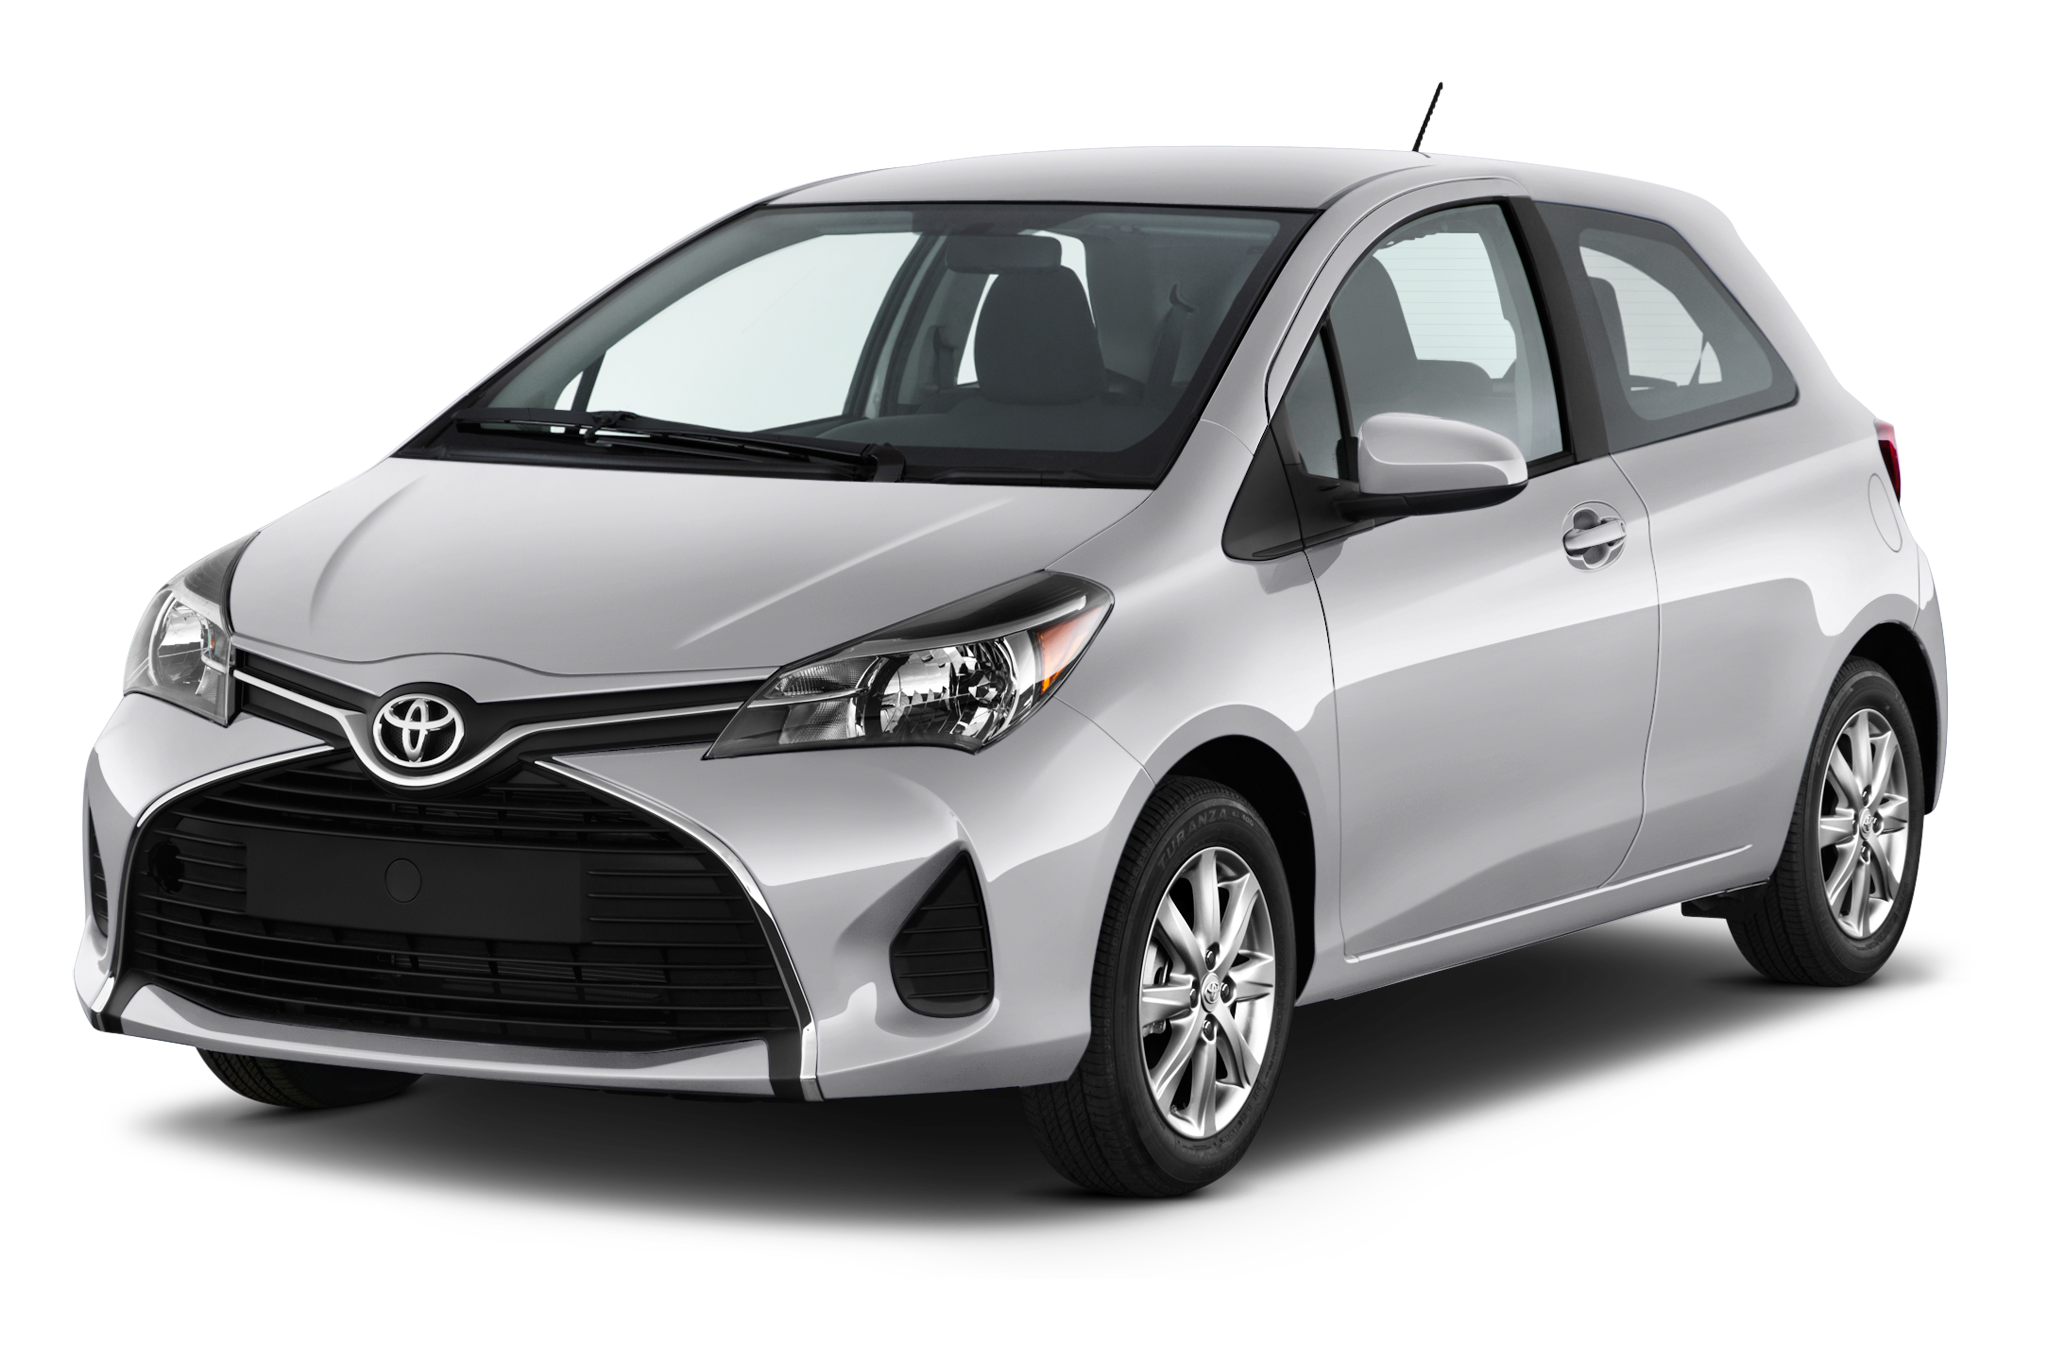 Images of Toyota Yaris | 2048x1360